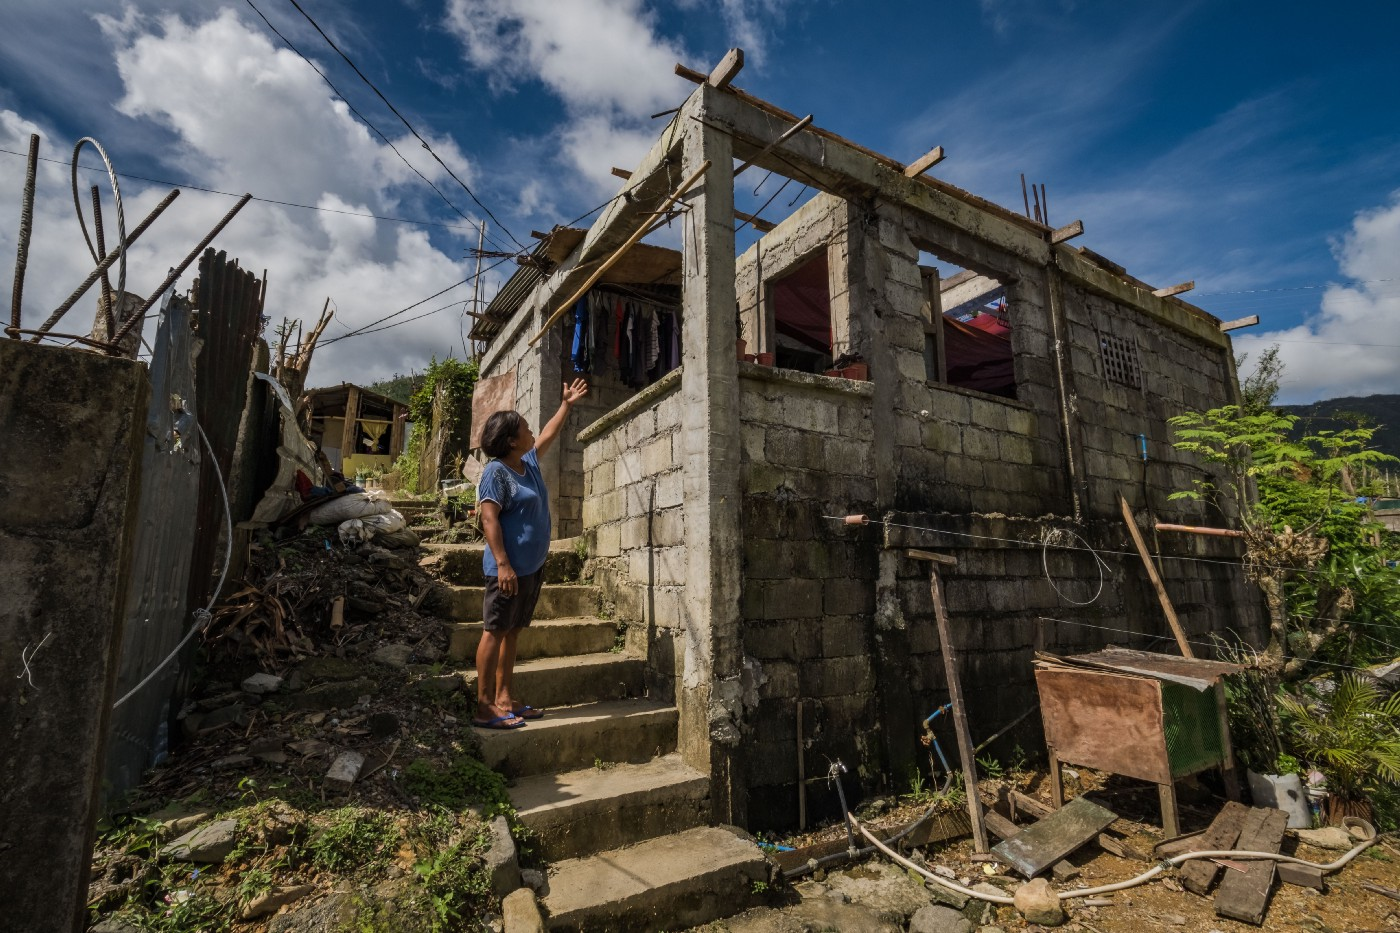 Rosalie Triste, who is 47 years old, points out the areas of damages in her home in Catanduanes, Philippines on 15 December 2020, following the devastating effects of Typhoon Goni.